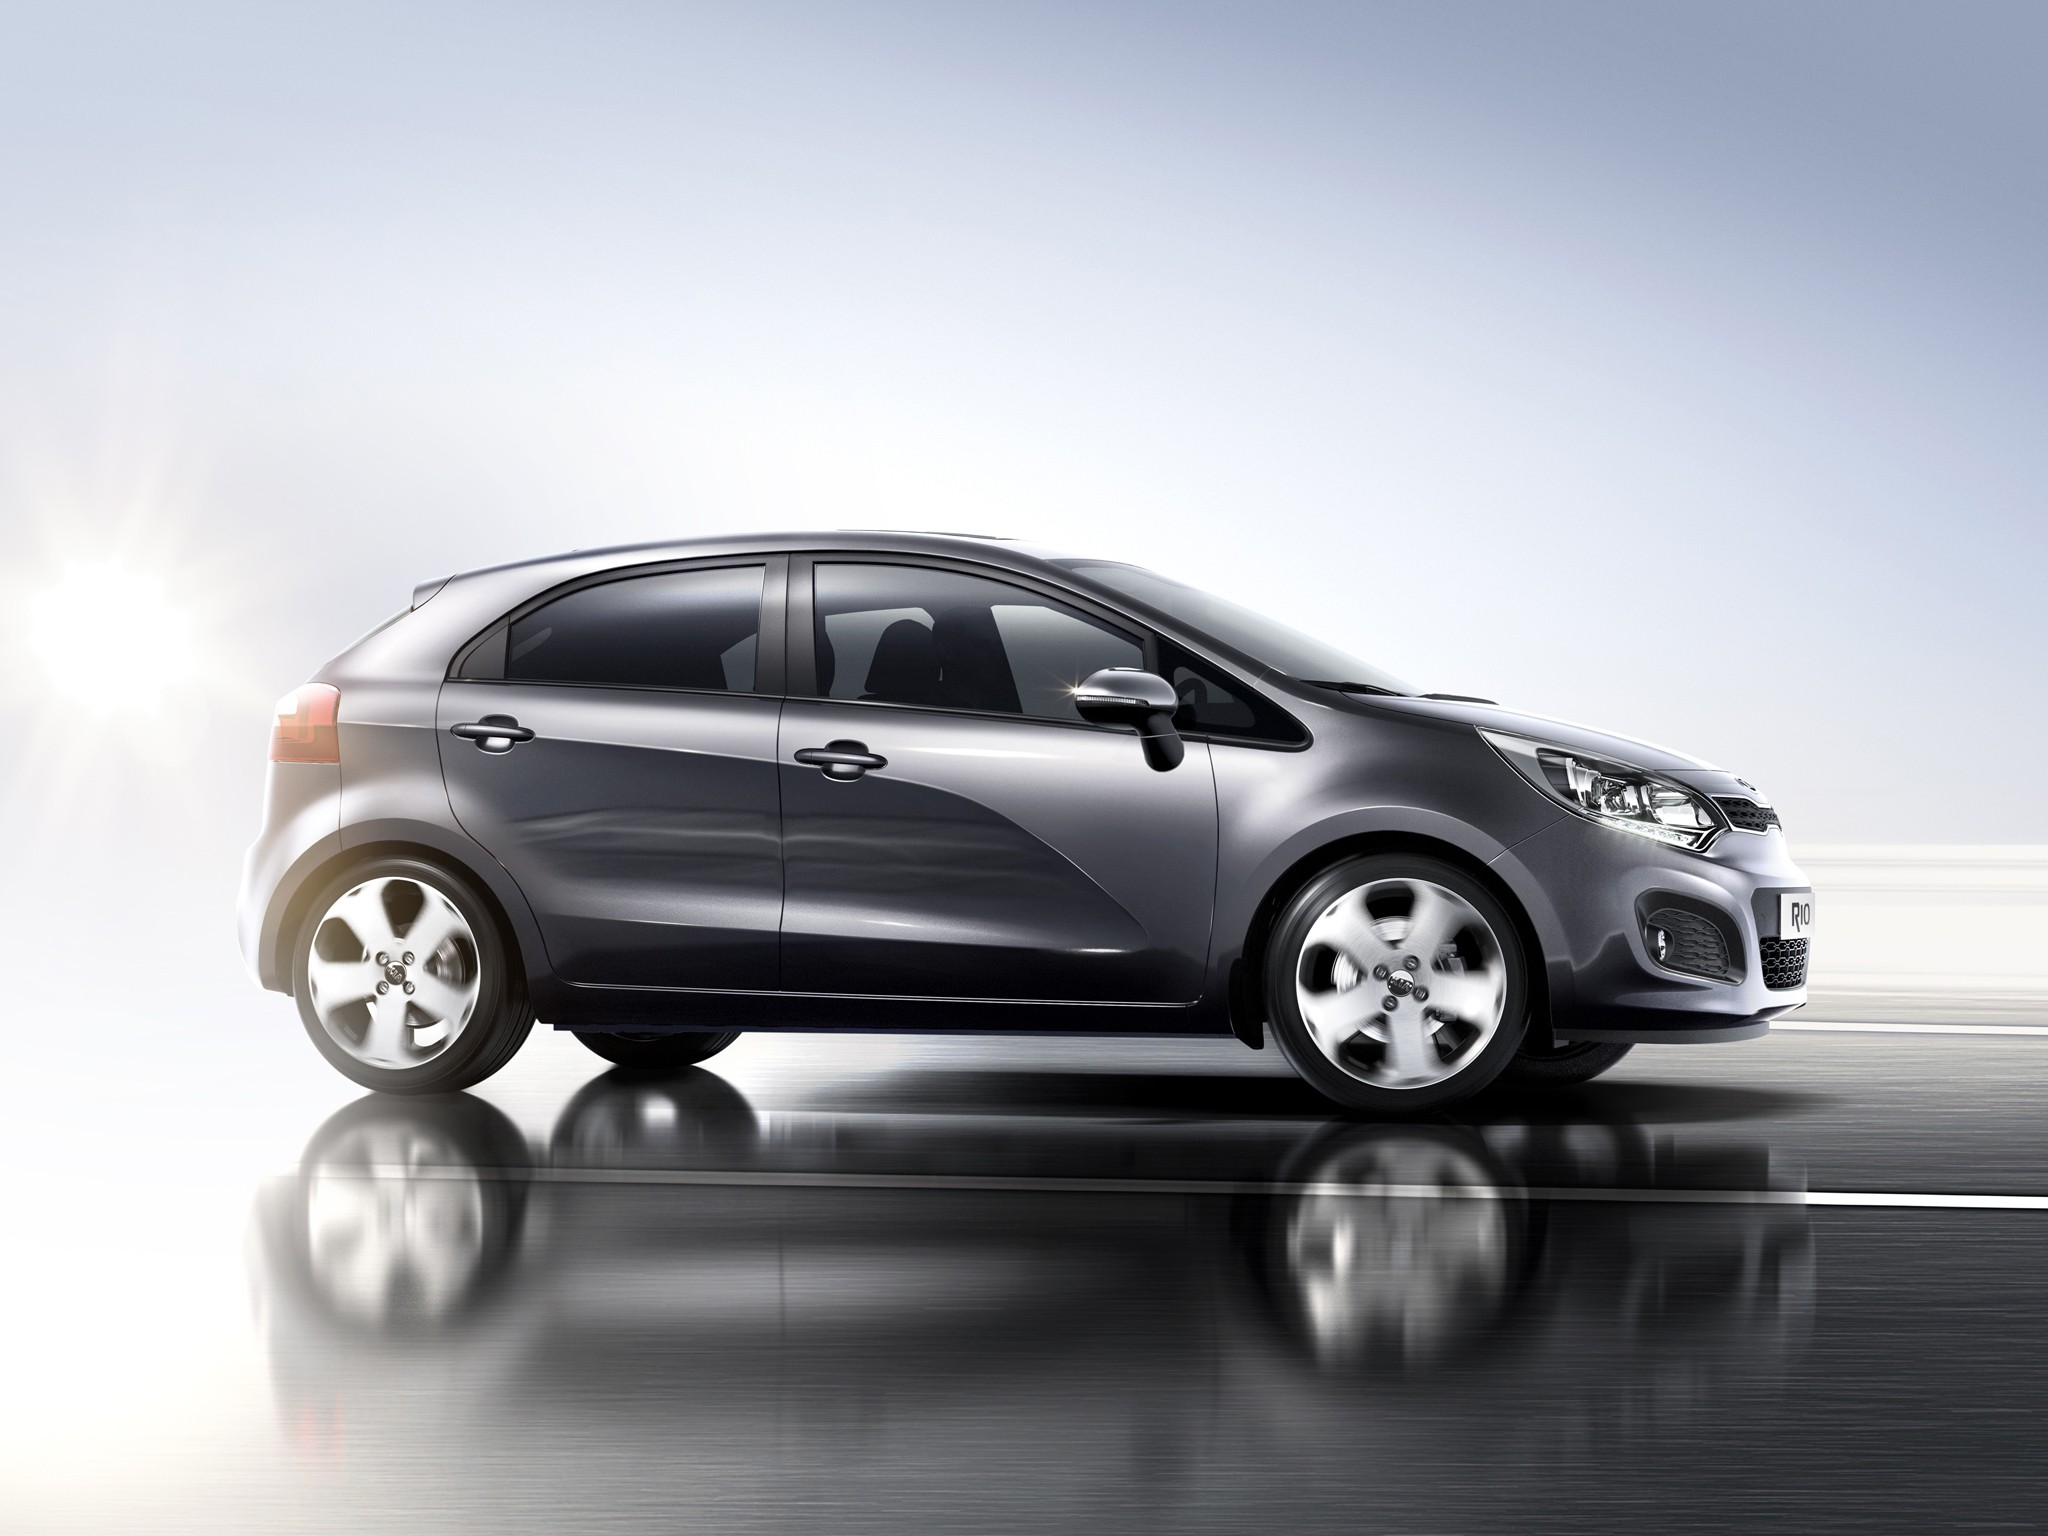 A solid clearance of the Kia Rio - now the car is capable of more